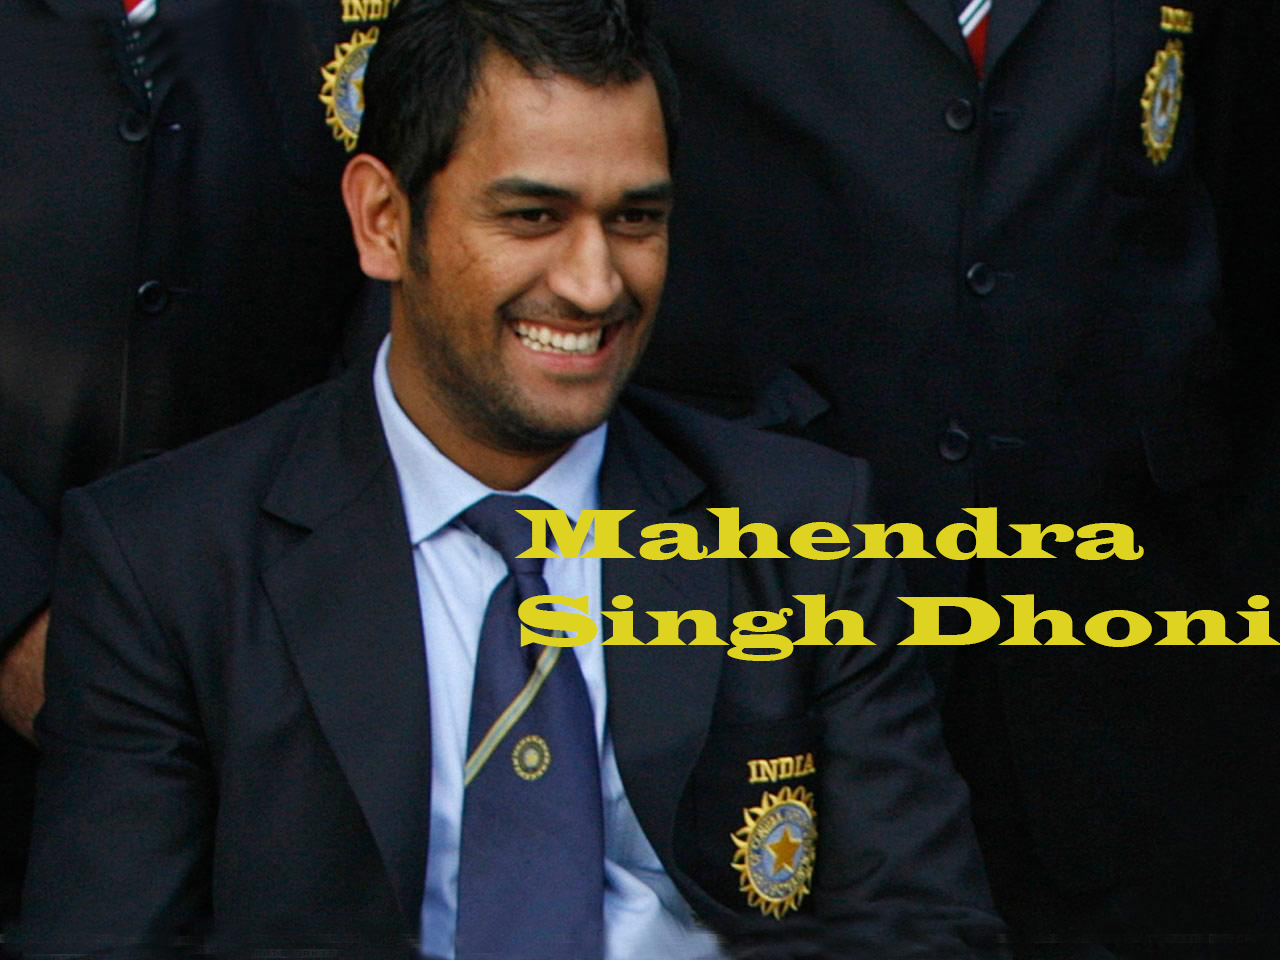 Mahendra Singh Dhoni In World Cup 2015